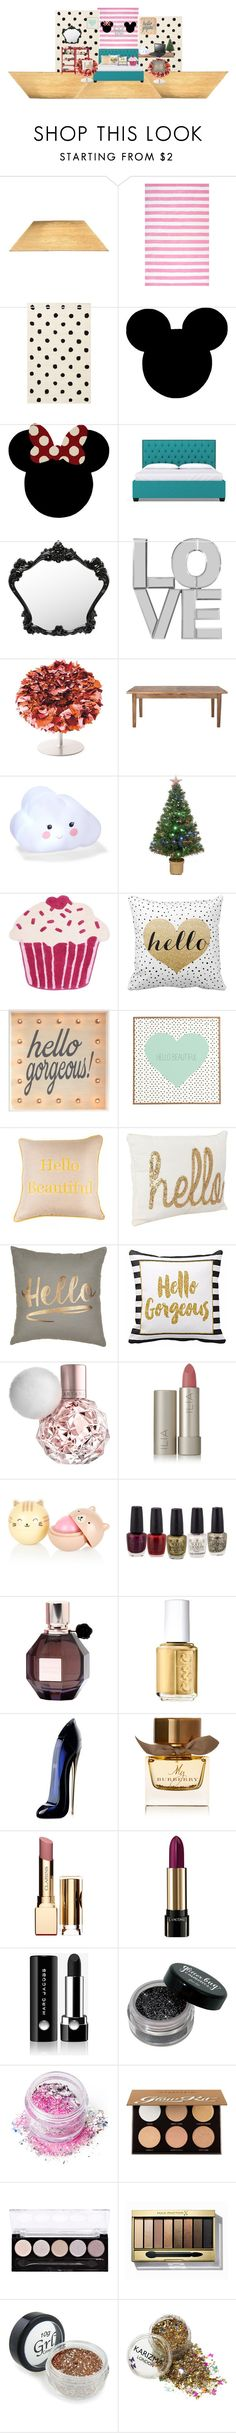 """my bedroom"" by analuizam-ferreira-rbd on Polyvore featuring beleza, nuLOOM, PBteen, Ethan Allen, Home Decorators Collection, Merske, Thro, DENY Designs, Samsung e Ilia"